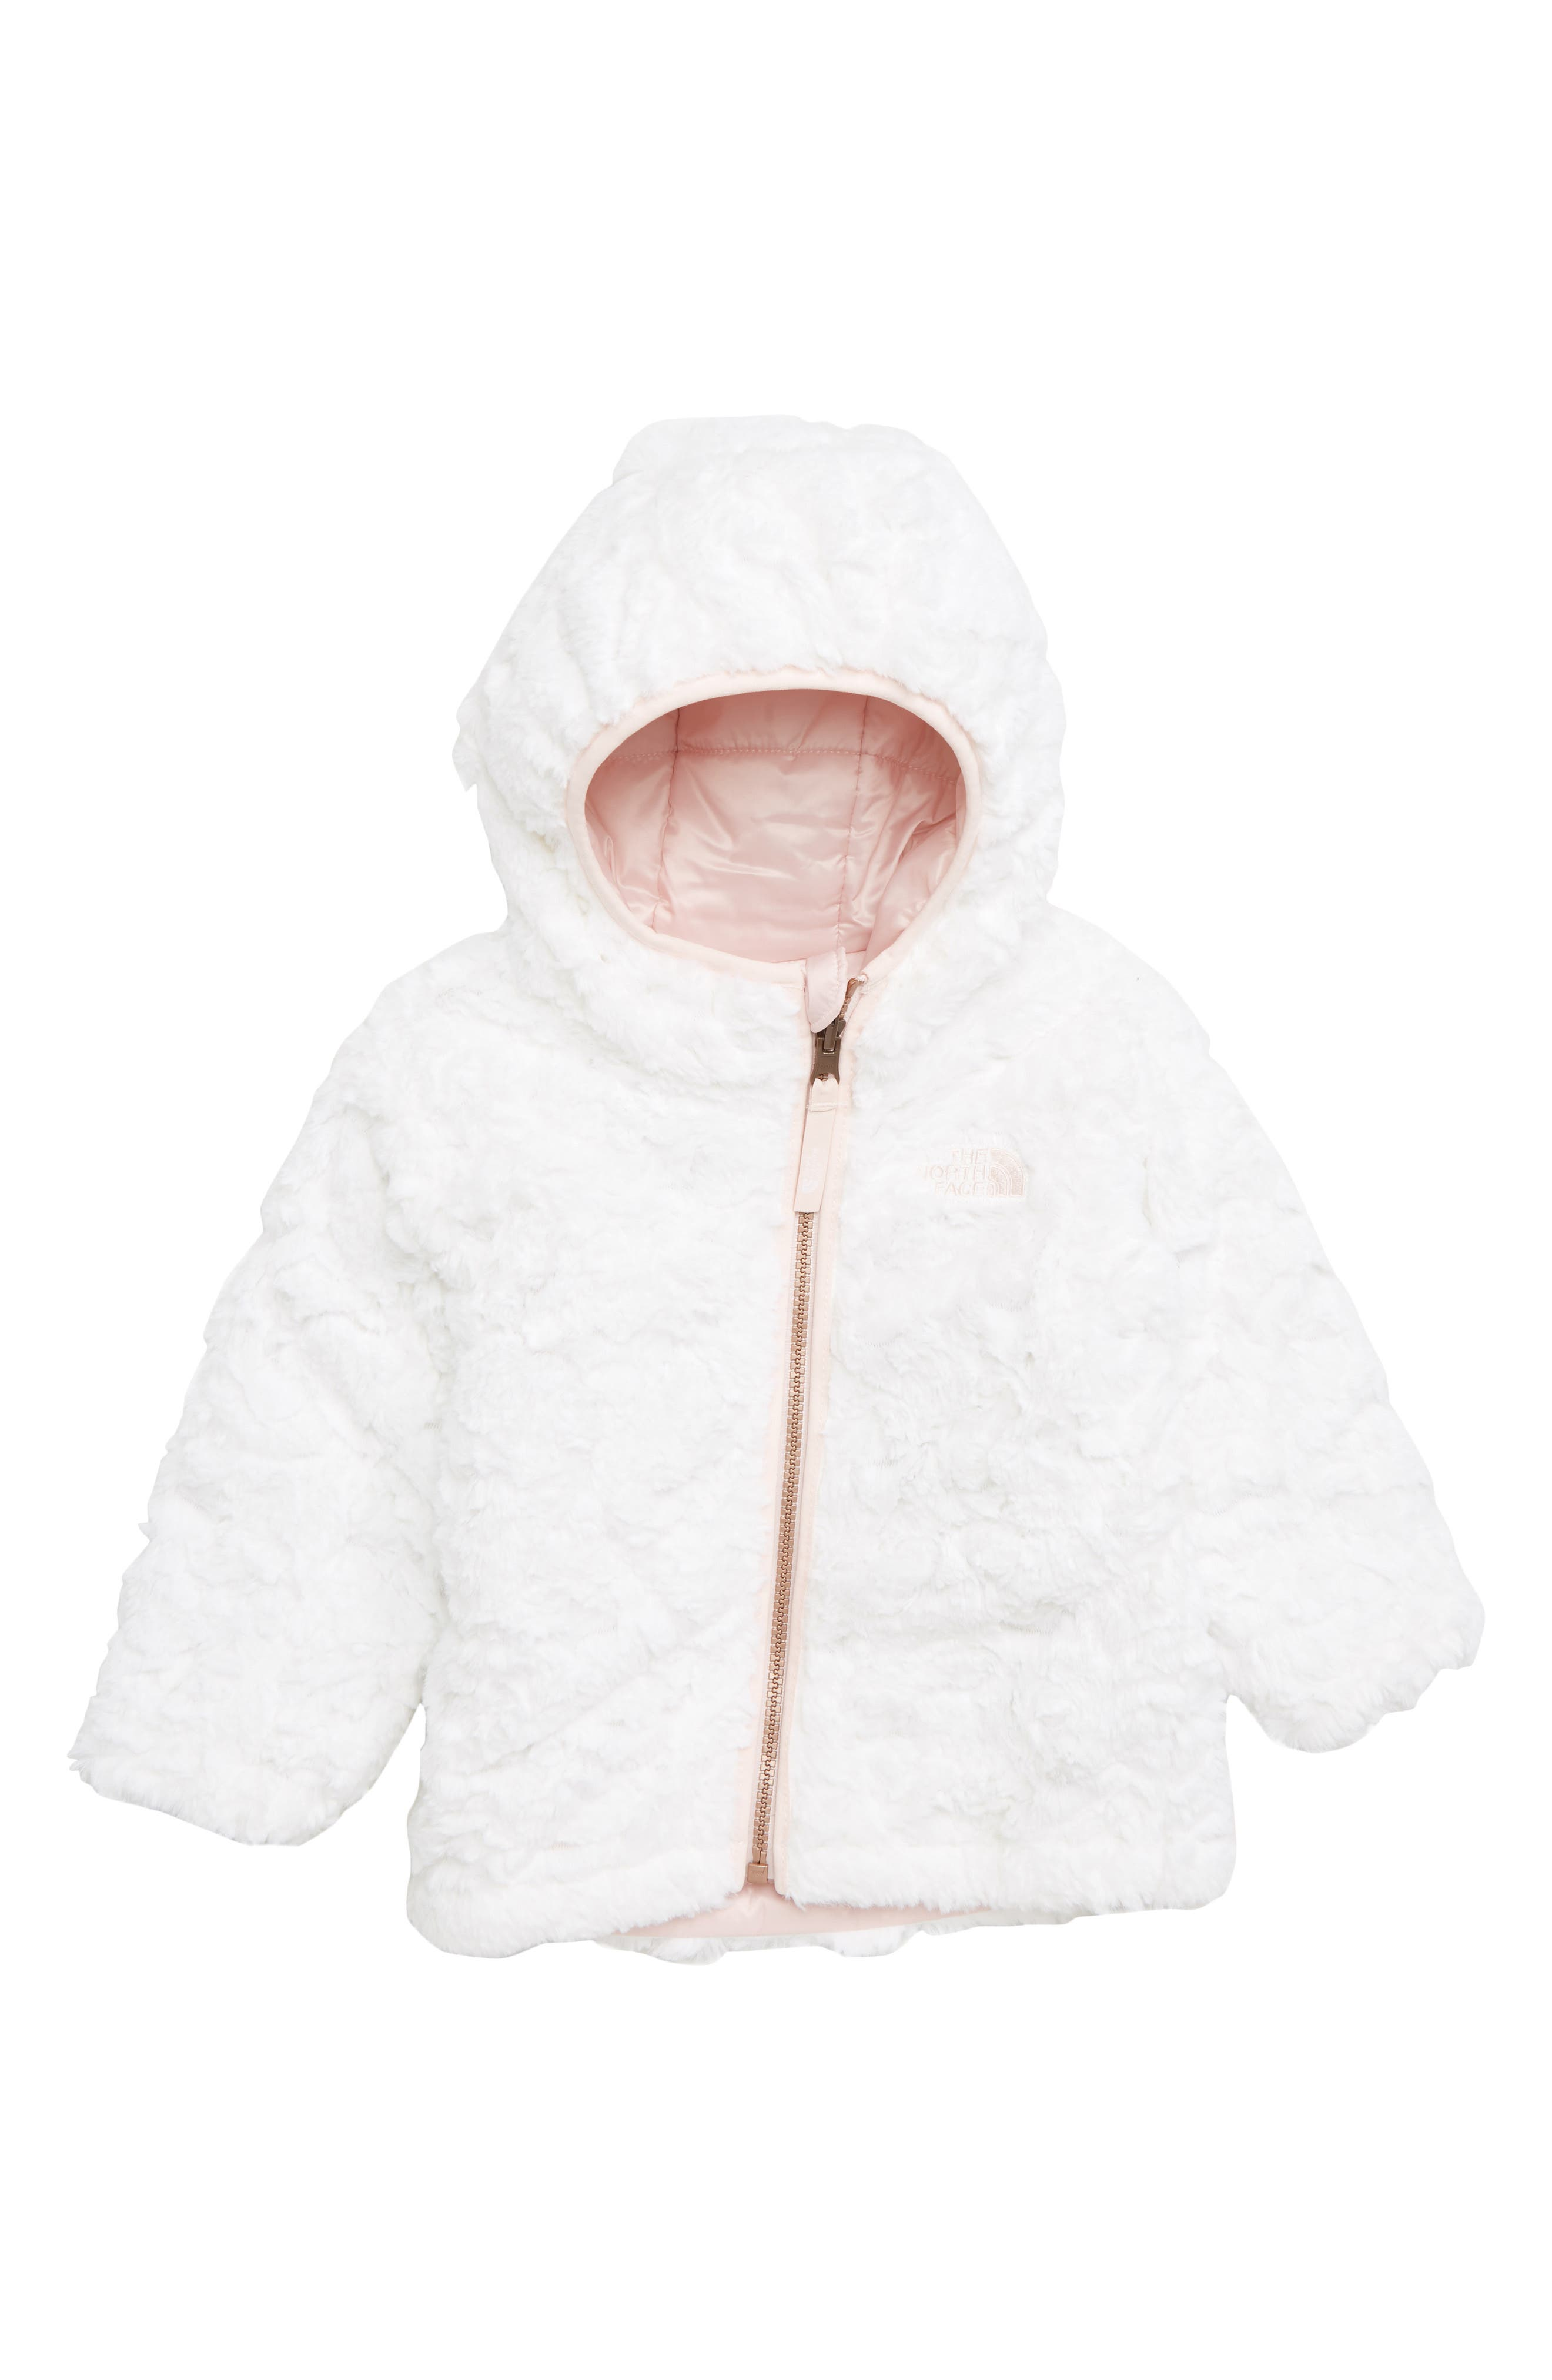 THE NORTH FACE, Mossbud Swirl Reversible Water Repellent Jacket, Alternate thumbnail 2, color, PURDY PINK